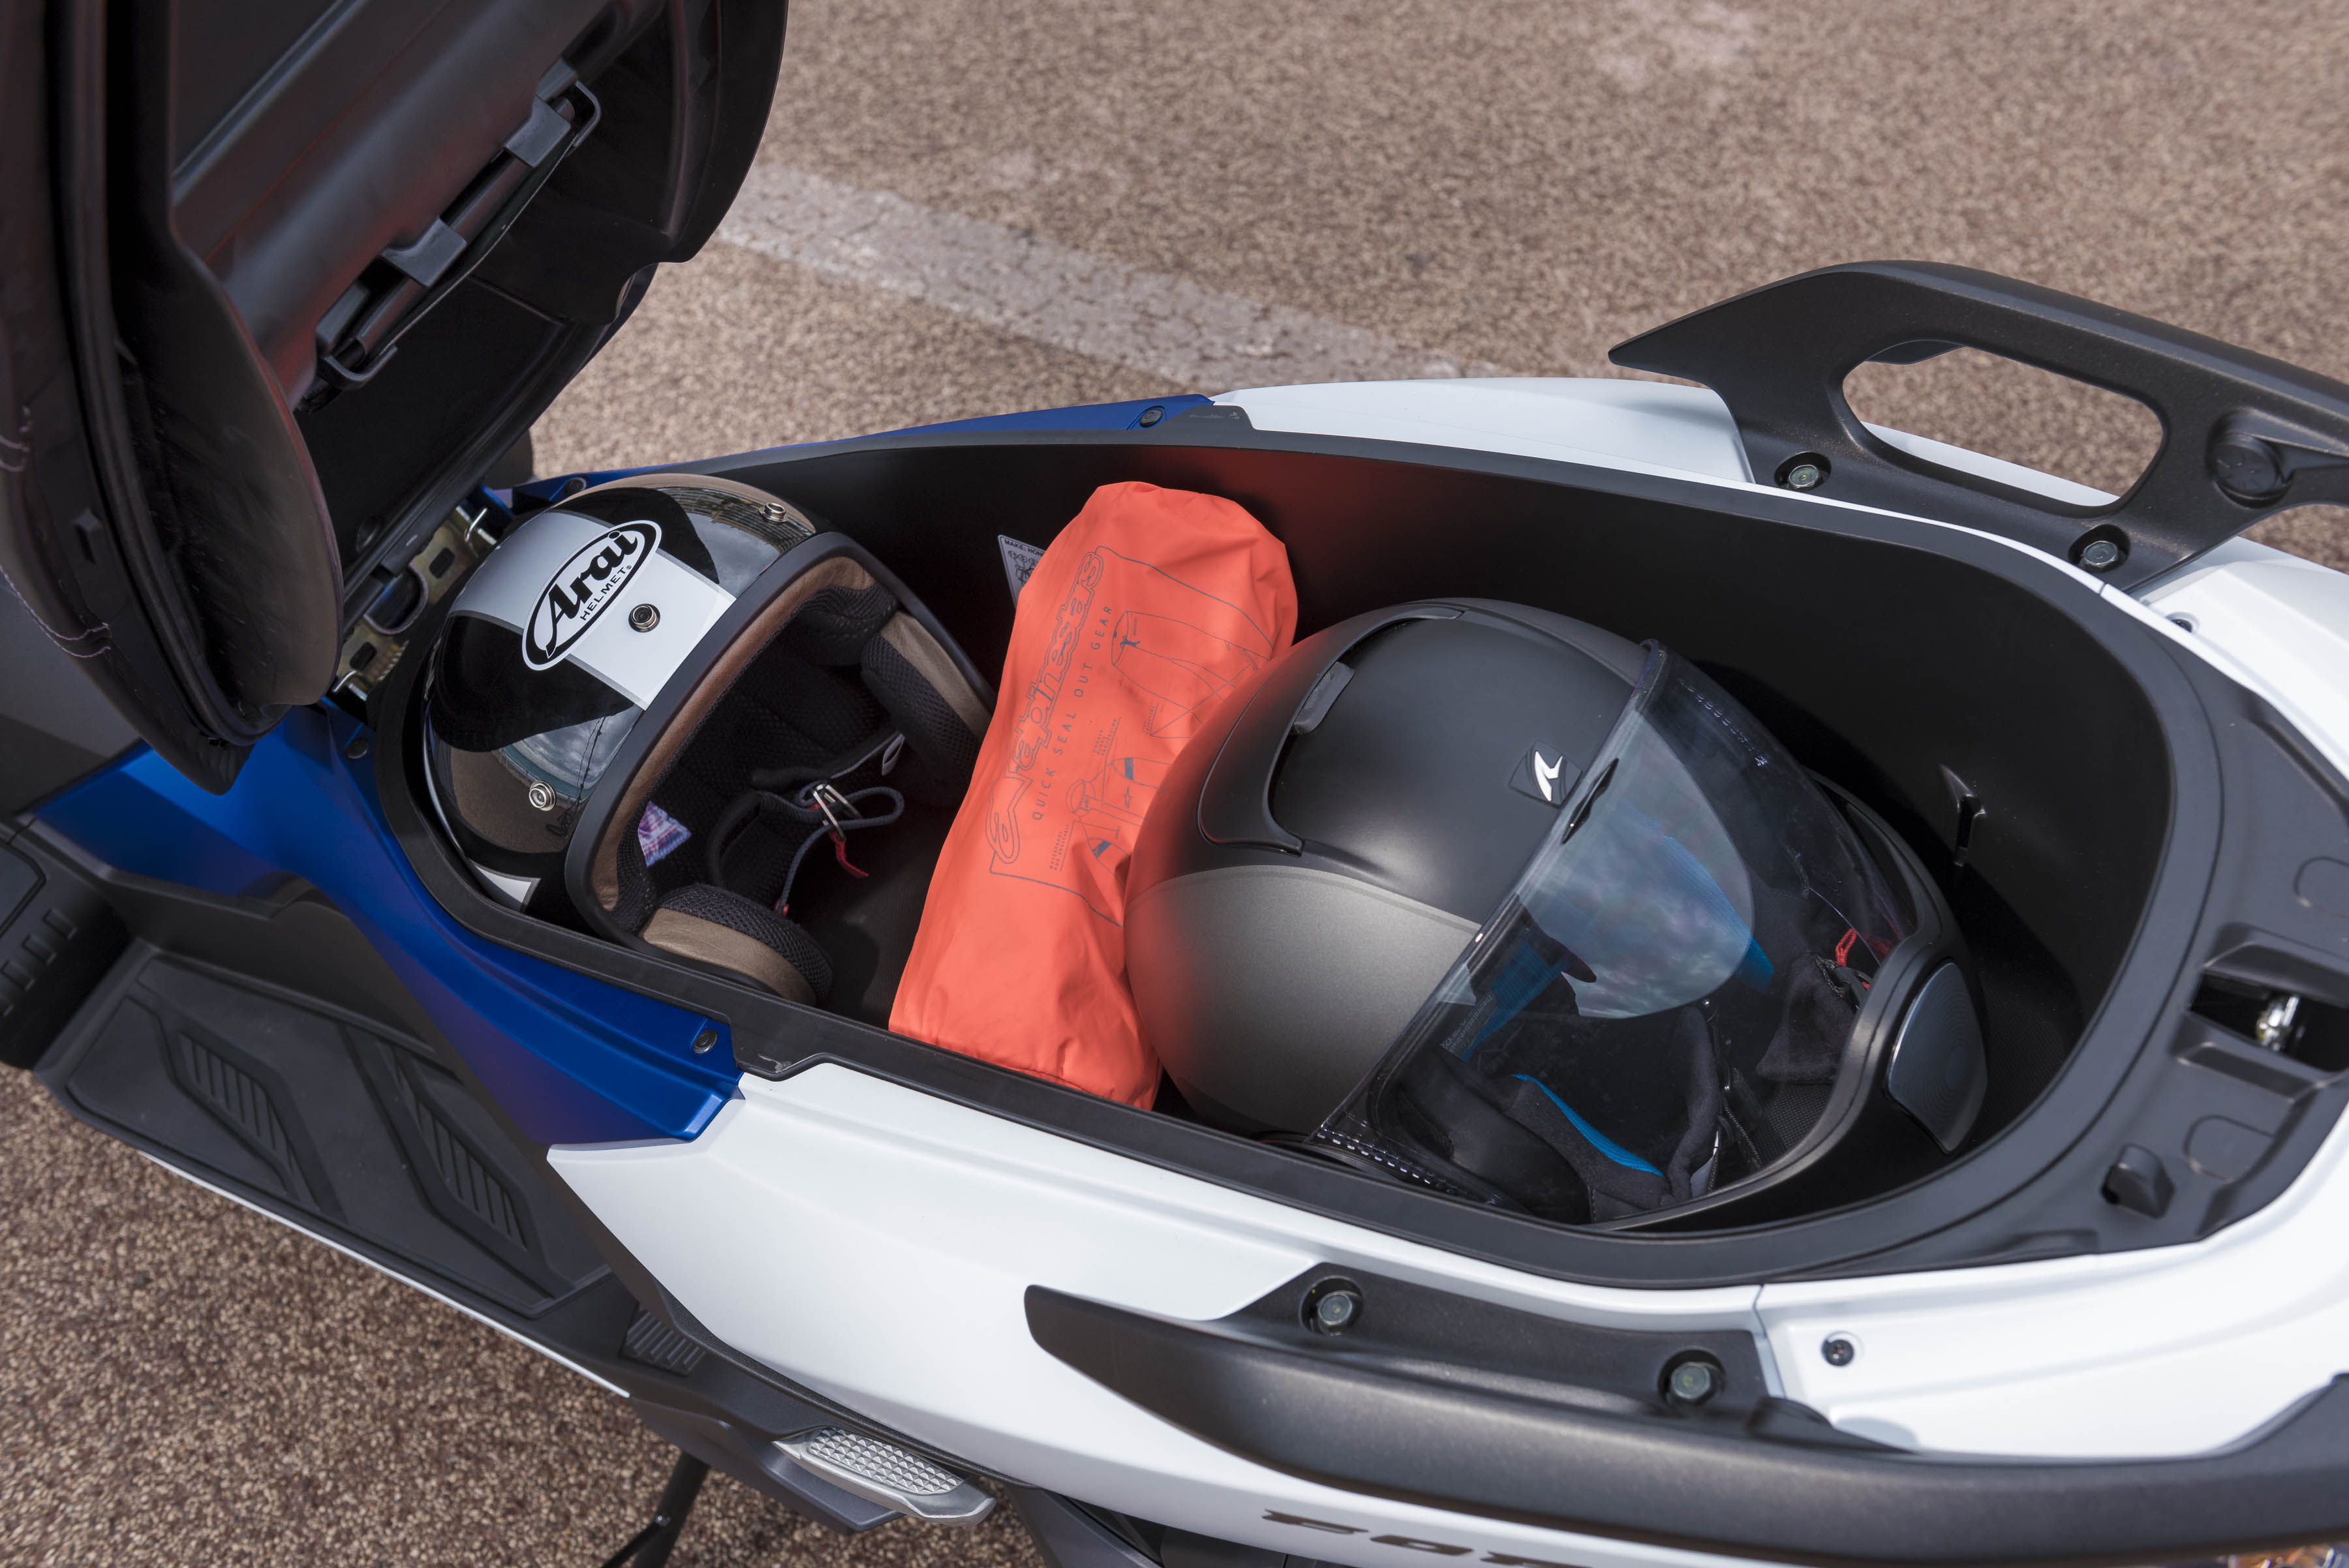 Continue reading outline first ride honda forza 125 review